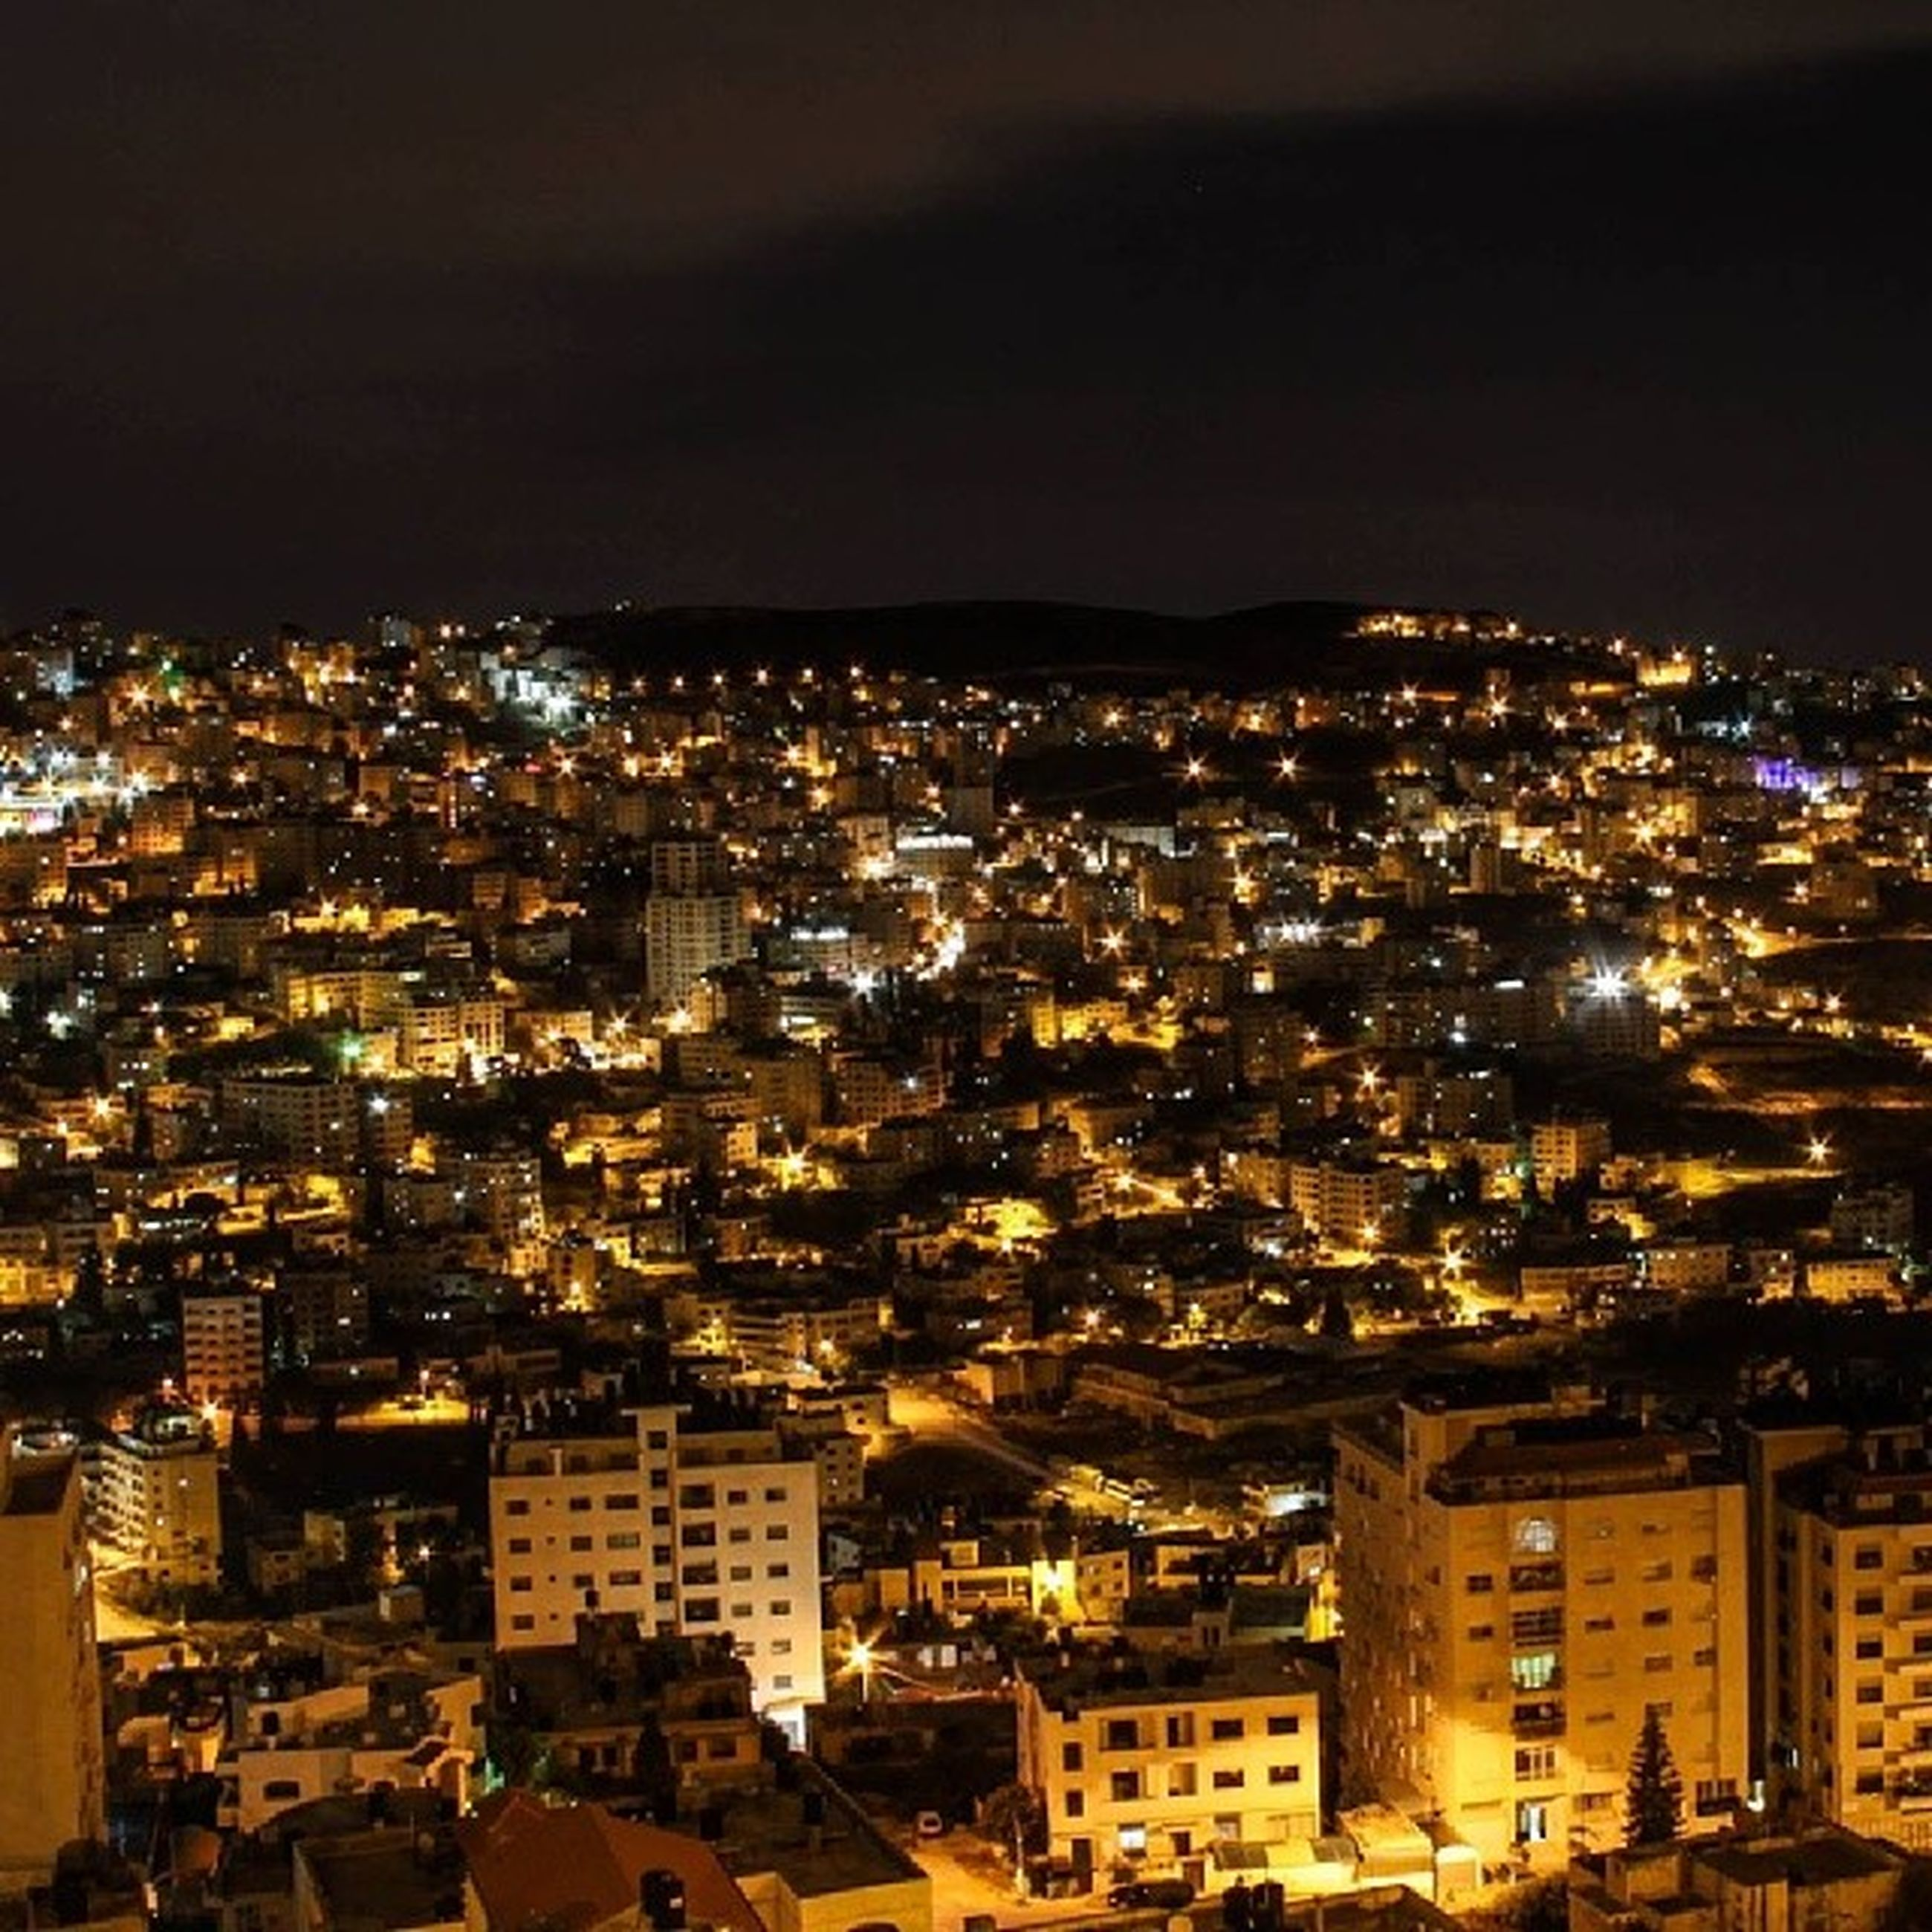 cityscape, illuminated, night, city, building exterior, architecture, crowded, built structure, high angle view, residential district, residential building, aerial view, residential structure, sky, city life, no people, community, outdoors, elevated view, copy space